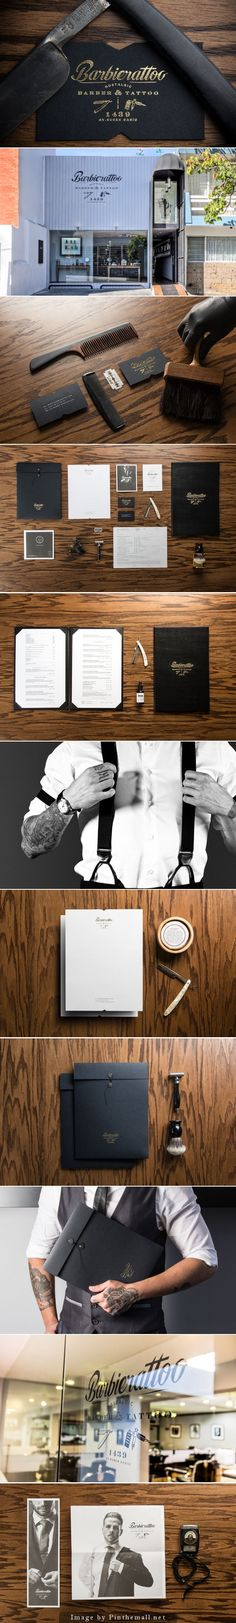 Barber and Tattoo Parlor Barbierattoo Branding